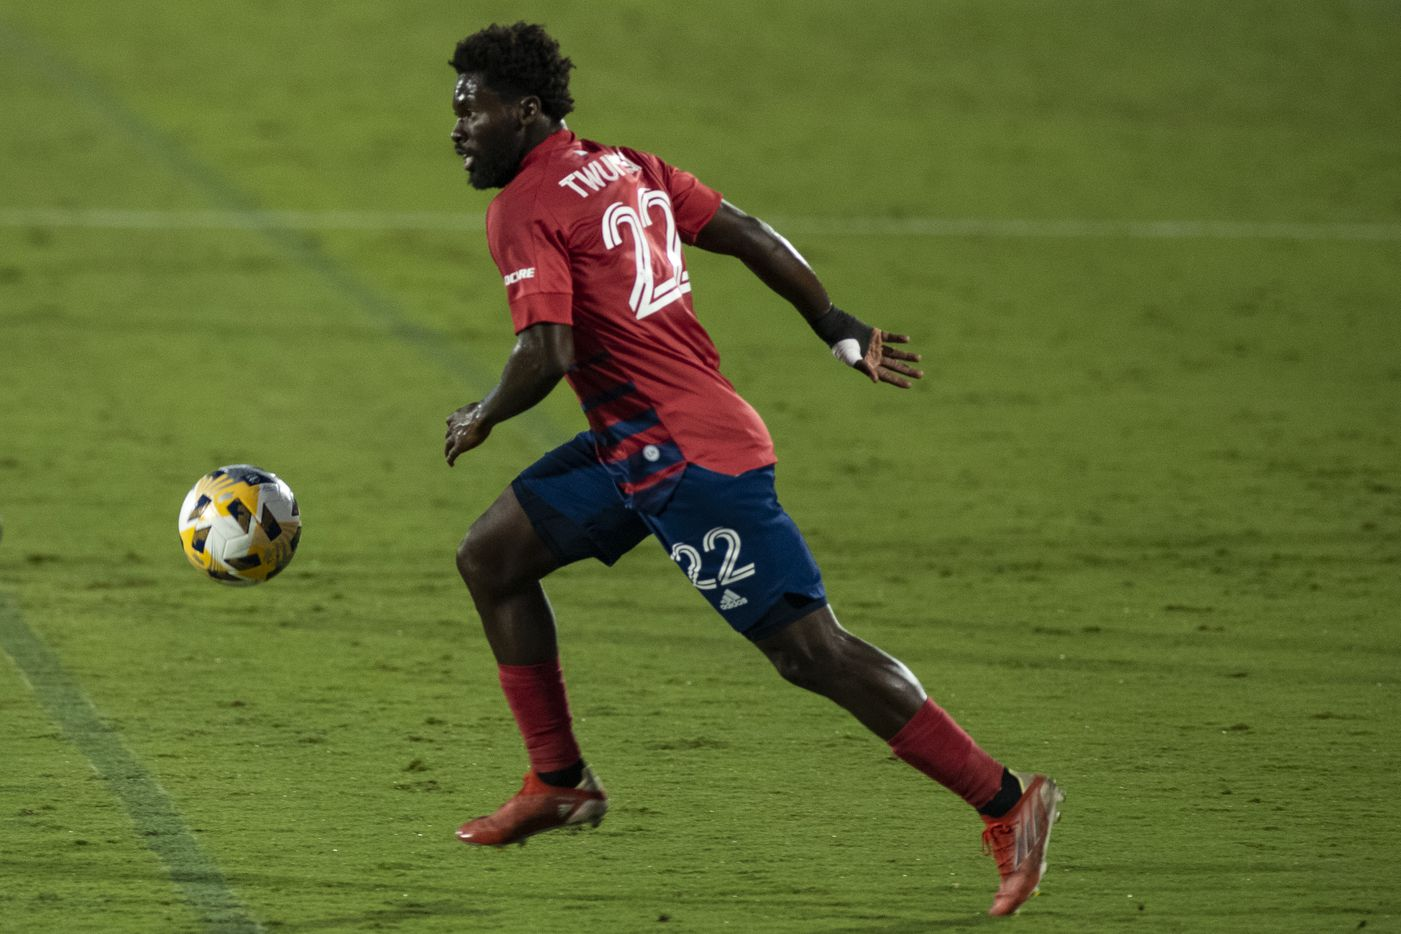 FC Dallas midfielder Ema Twumasi (22) looks for an open teammate to pass to during FC DallasÕ home game against the San Jose Earthquakes at Toyota Stadium in Frisco, Texas on Saturday, September 11, 2021. (Emil Lippe/Special Contributor)